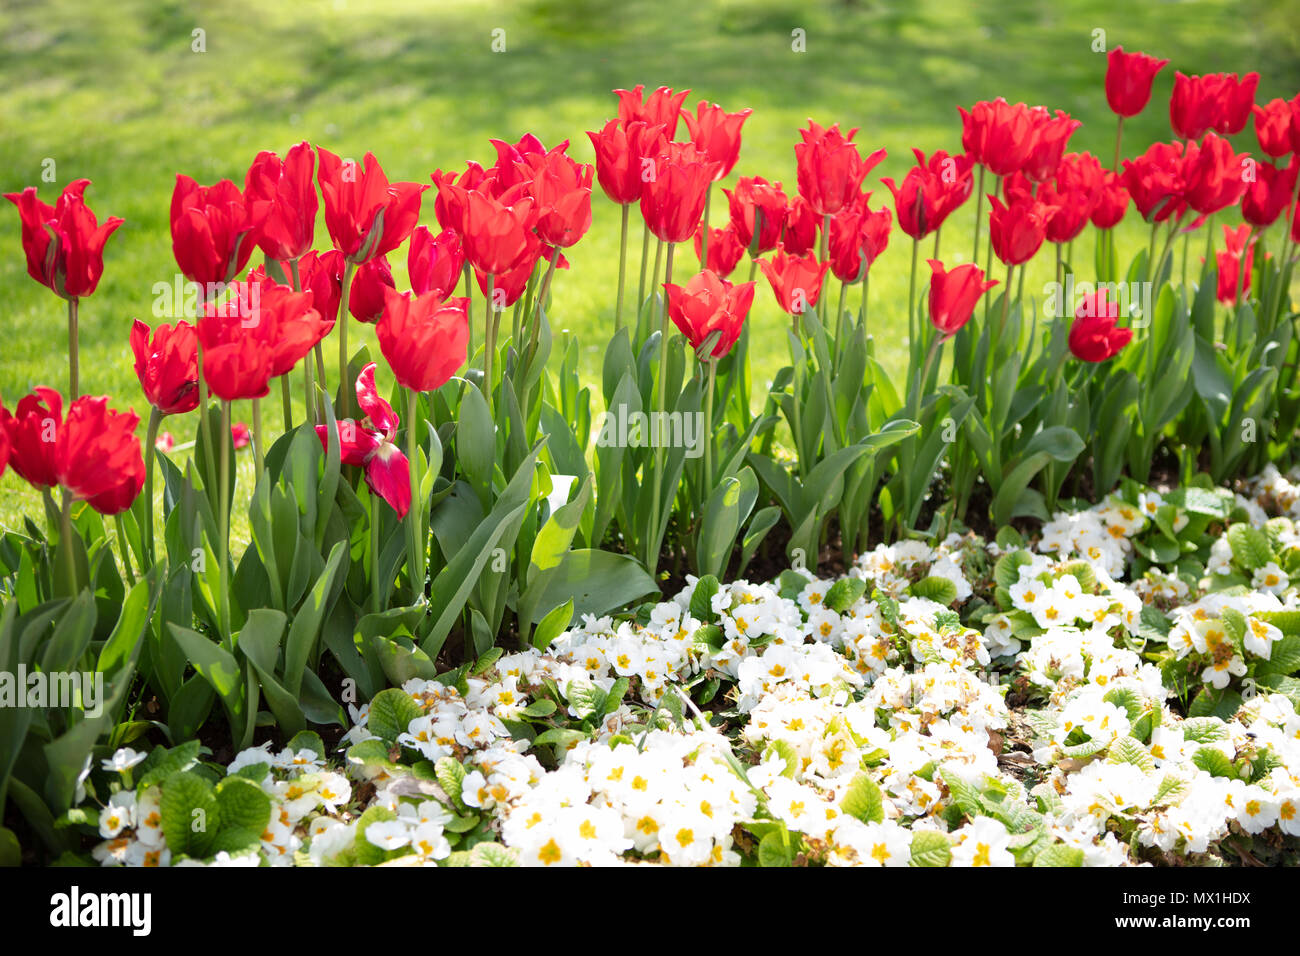 White Flowers And Amazing Tulips Background Beautiful View Of Red